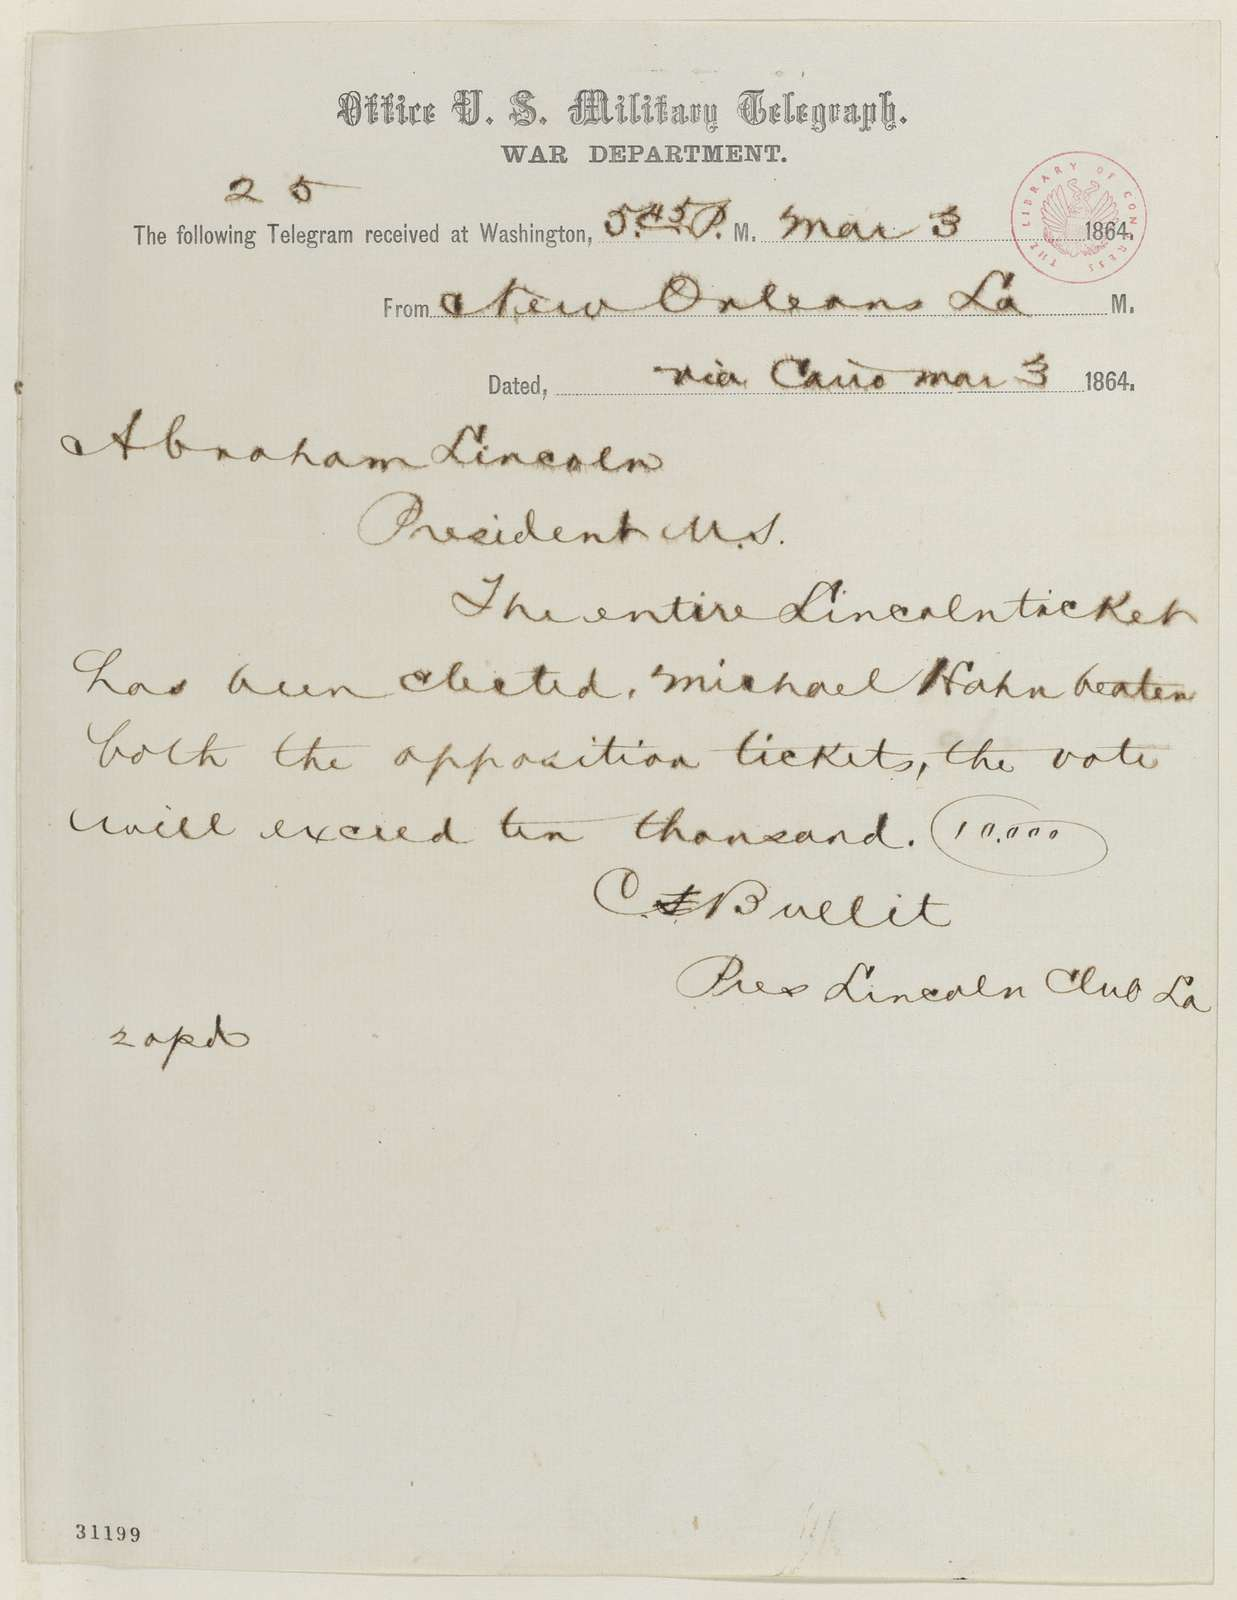 Abraham Lincoln papers: Series 1. General Correspondence. 1833-1916: Cuthbert Bullitt to Abraham Lincoln, Thursday, March 03, 1864 (Telegram reporting Louisiana election results)